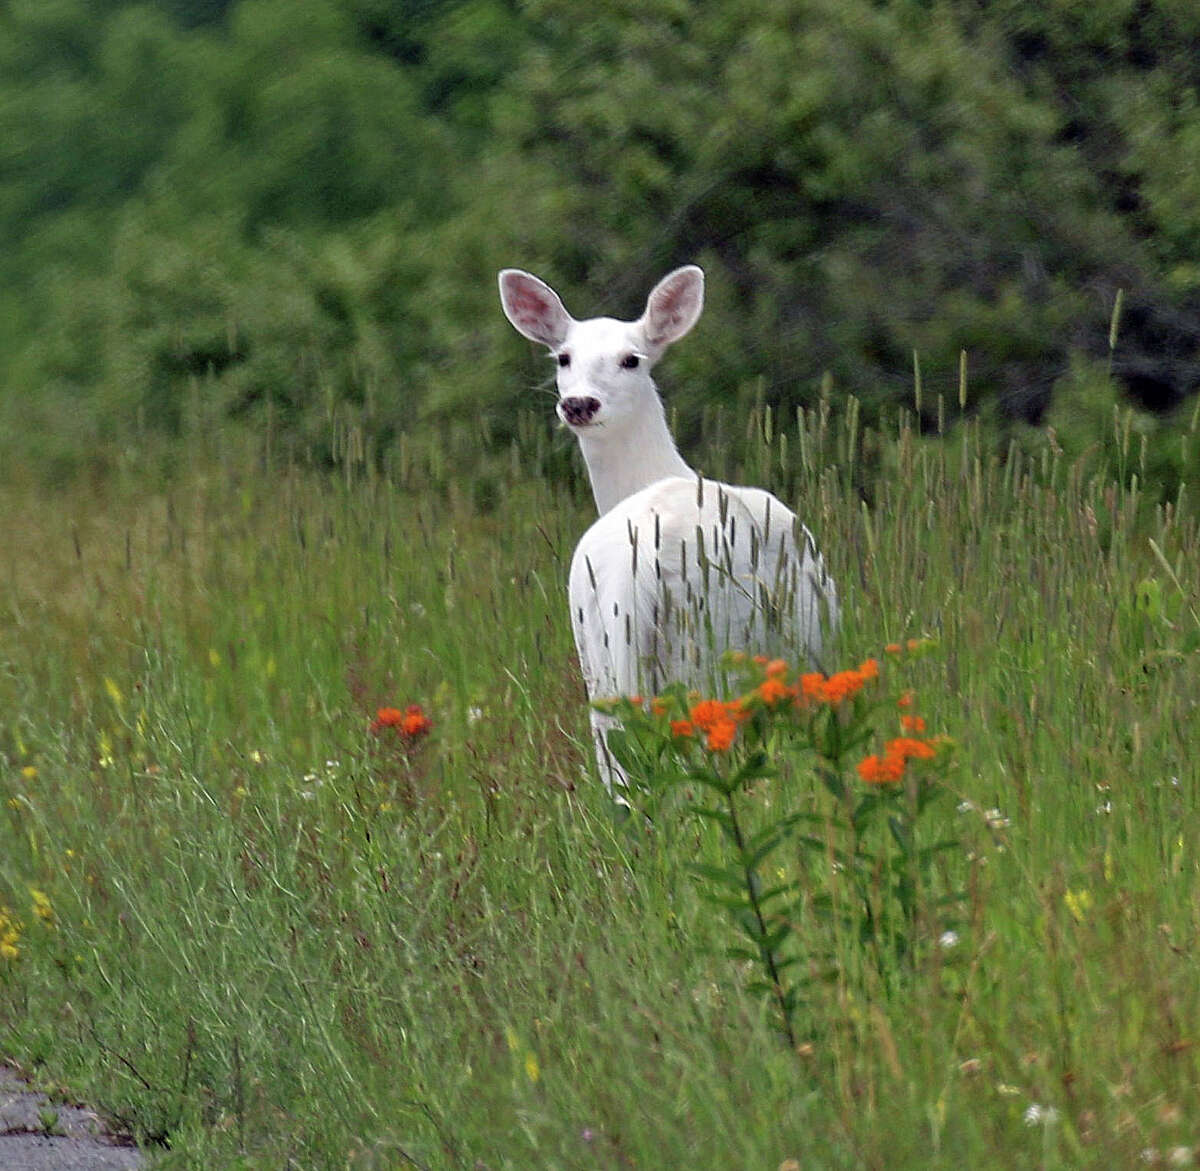 In this June 28, 2017 photo, a white deer stands in a field with orange butterfly weed at the Seneca Army Depot in upstate New York. Public bus tours to view a rare herd of ghostly white deer at a former World War II Army weapons depot are slated to begin fall 2017. The white deer roaming the 7,000-acre Seneca Army Depot in the Finger Lakes have been off-limits to the public for decades, save for glimpses through the surrounding chain-link fence. (Dennis Money via AP) ORG XMIT: NYHO201